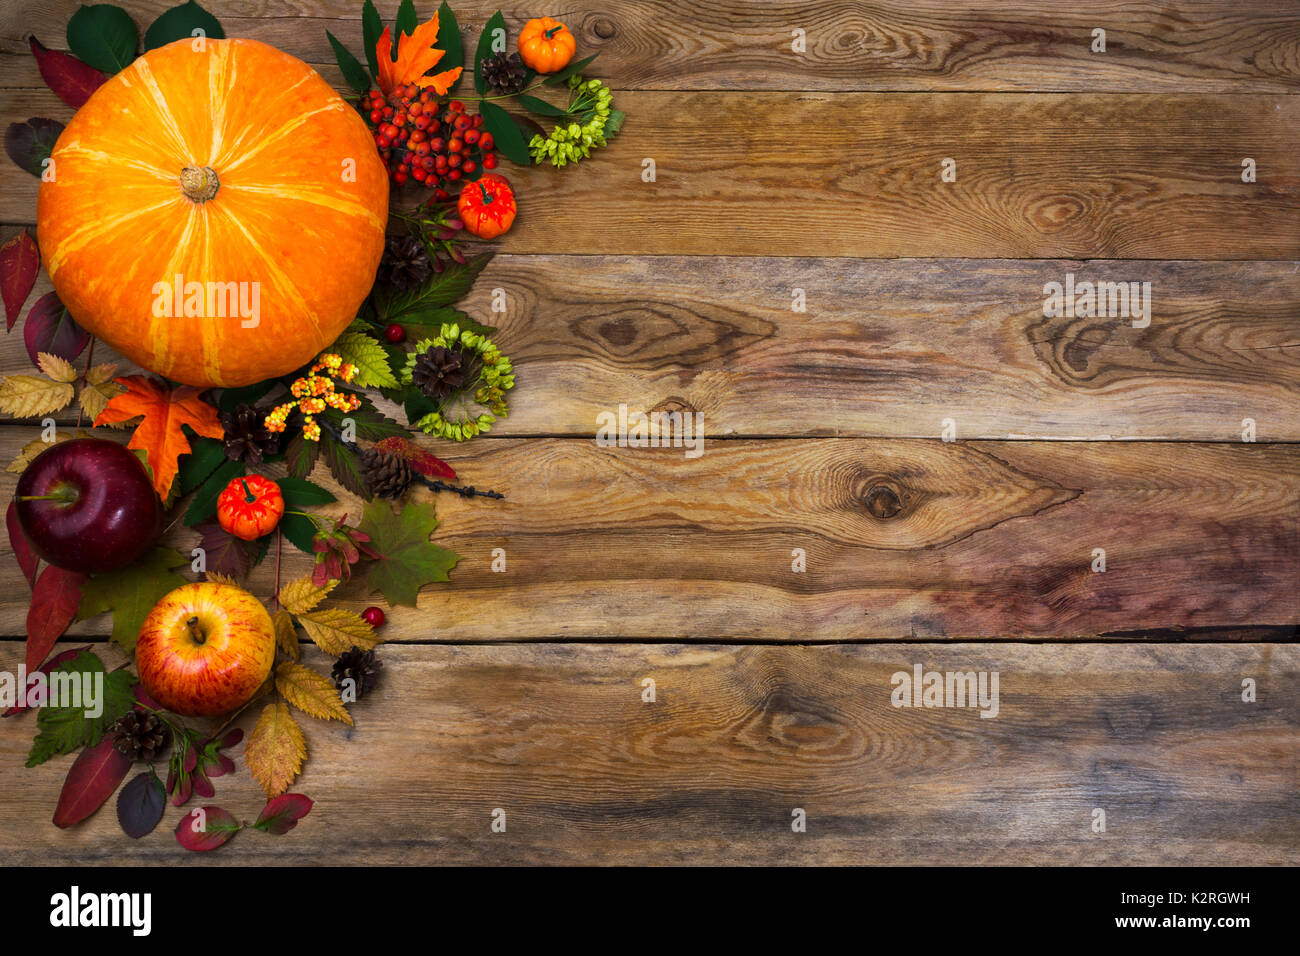 Happy Thanksgiving Decor With Pumpkin Apples And Autumn Leaves On The Left Side Of Rustic Wooden Table Fall Background Seasonal Vegetables